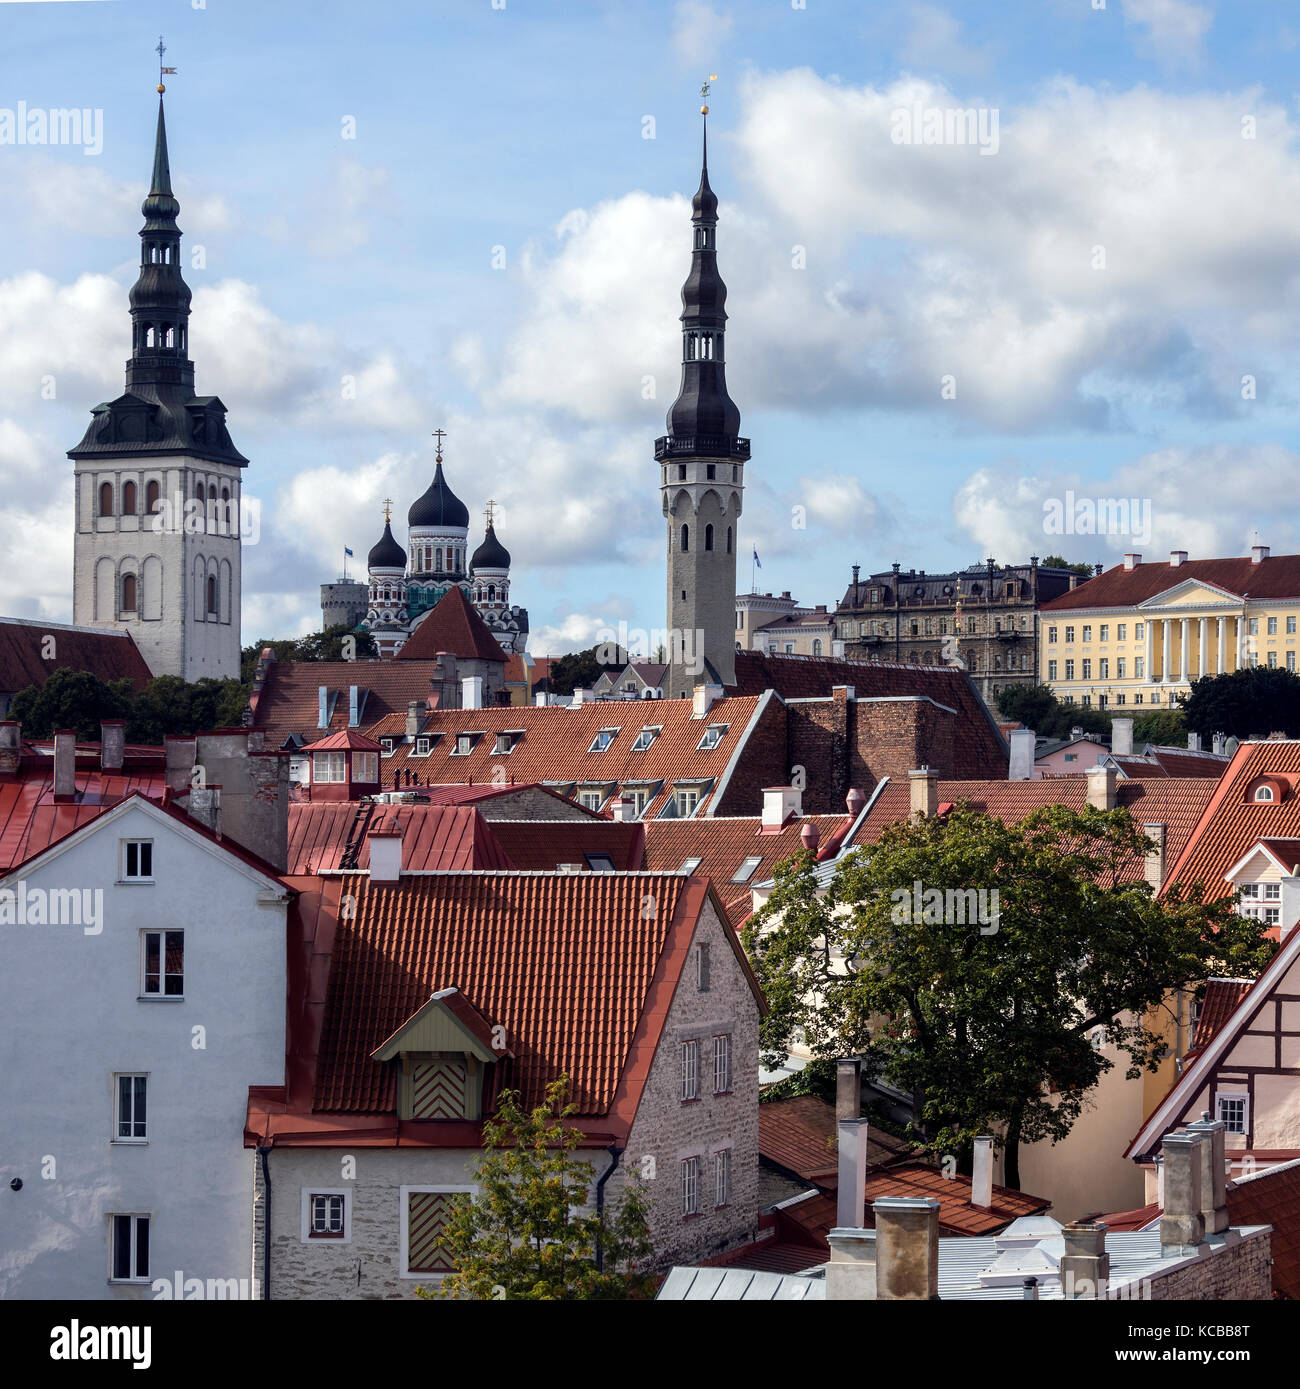 Skyline of Tallinn in Estonia. The three churches are - St Nicholas Church, Alexander Nevsky Cathedral and the Church - Stock Image